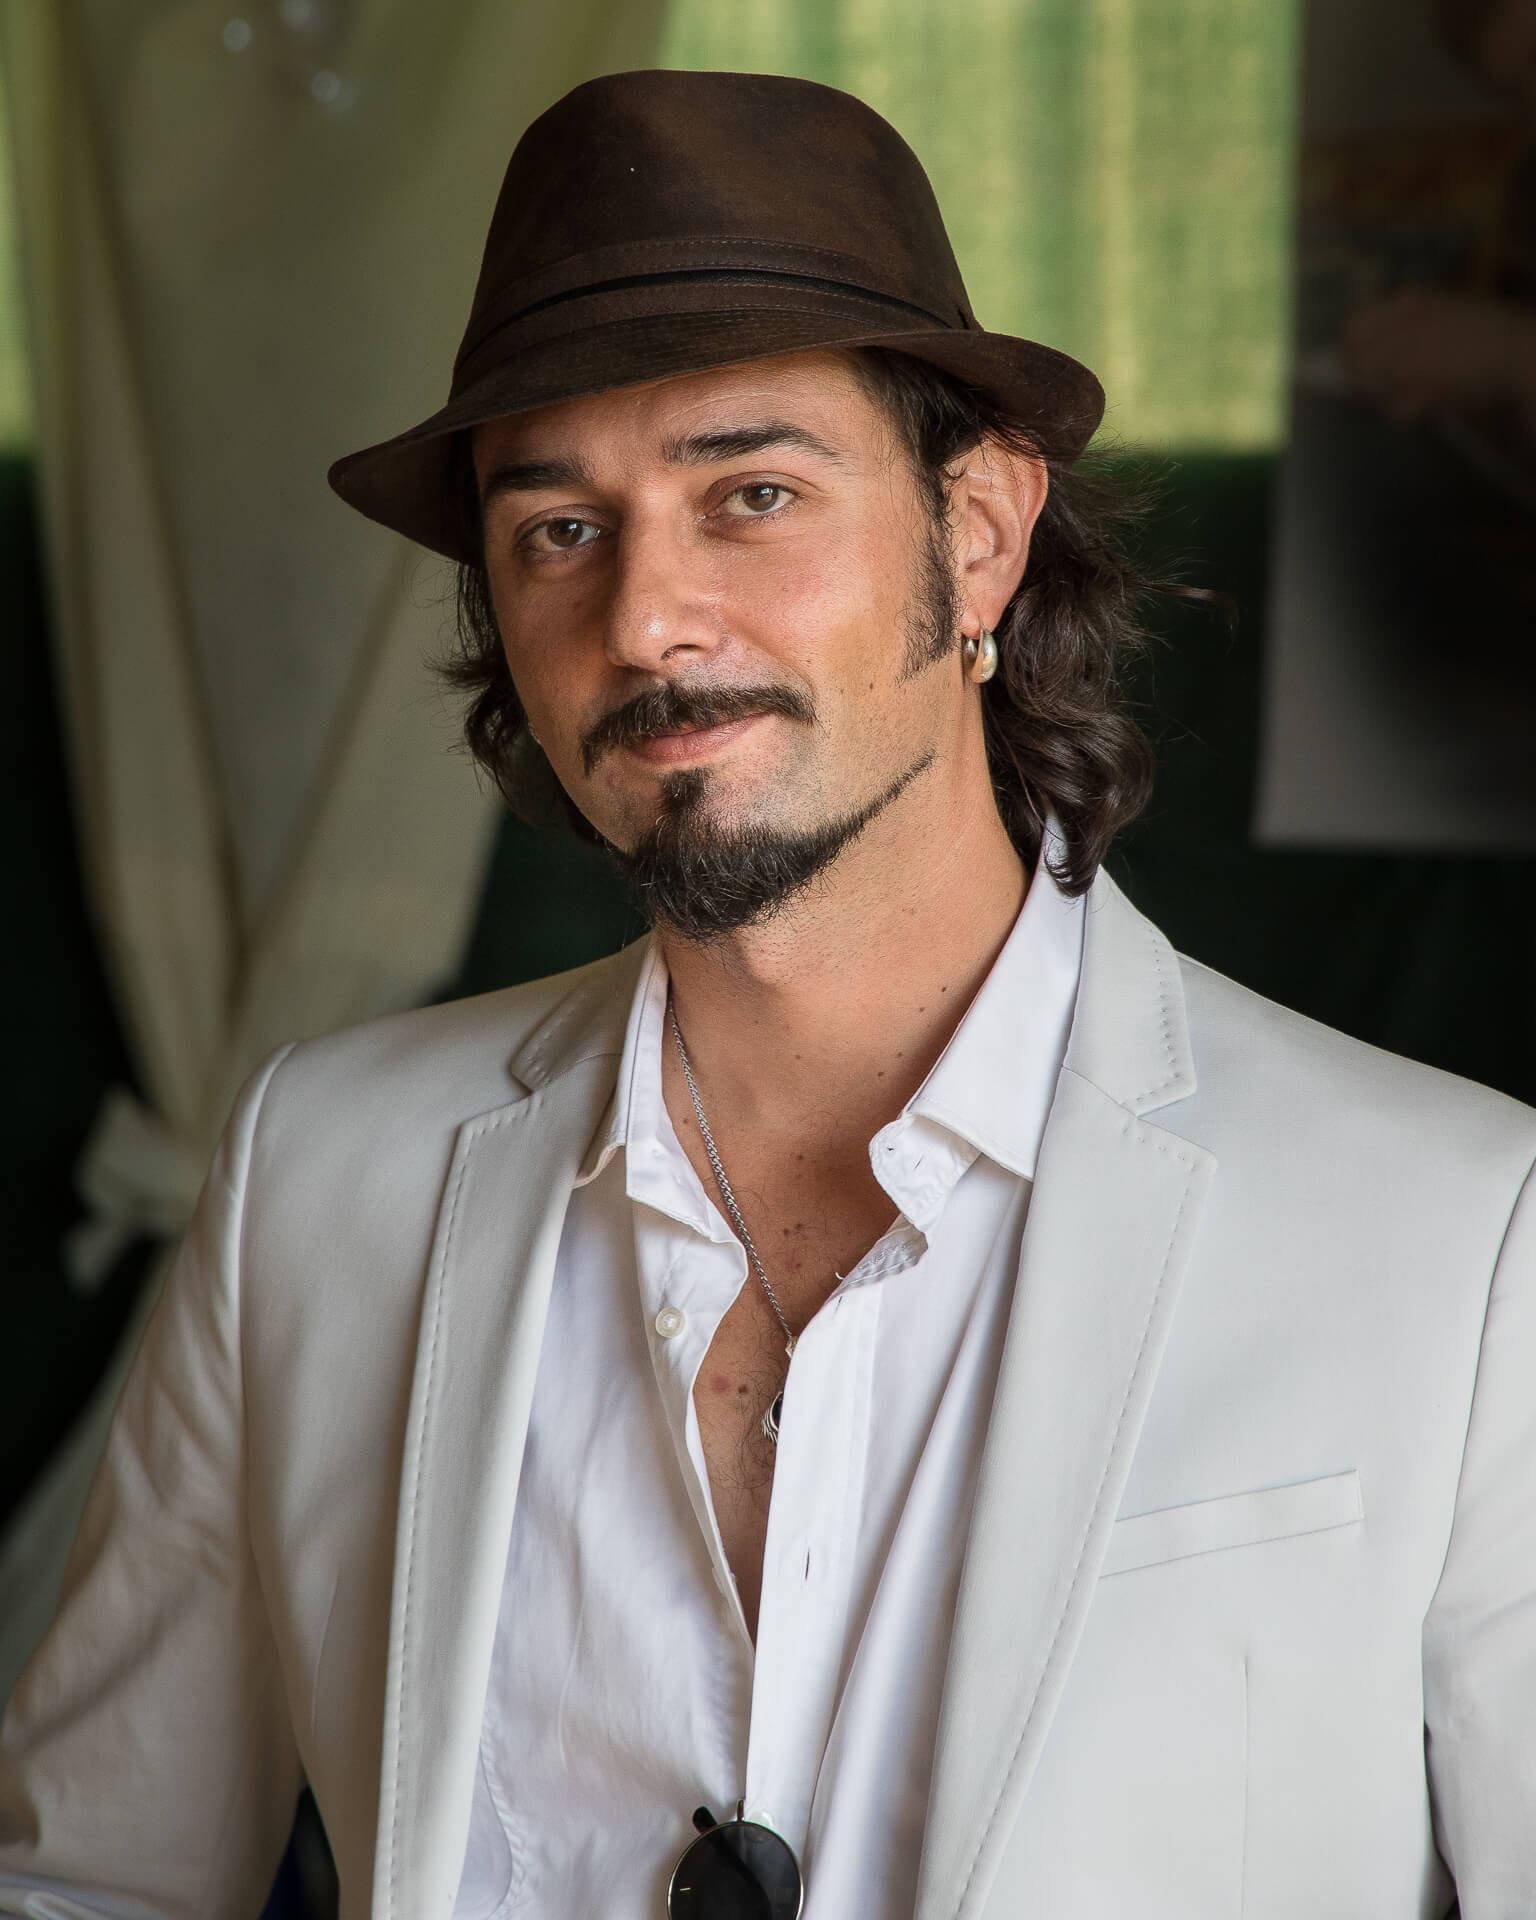 An unknown male wedding guest. A hat wearing, dark curly haired, brown eyed, bearded individual he attended a wedding I was shooting at in France in 2016 . He wears a white collared shirt, a light grey jacket, a silver chain around his neck, and has matching sunglasses hanging from his semi open shirt. He sits and poses for the camera whist giving just a hint of a smile.